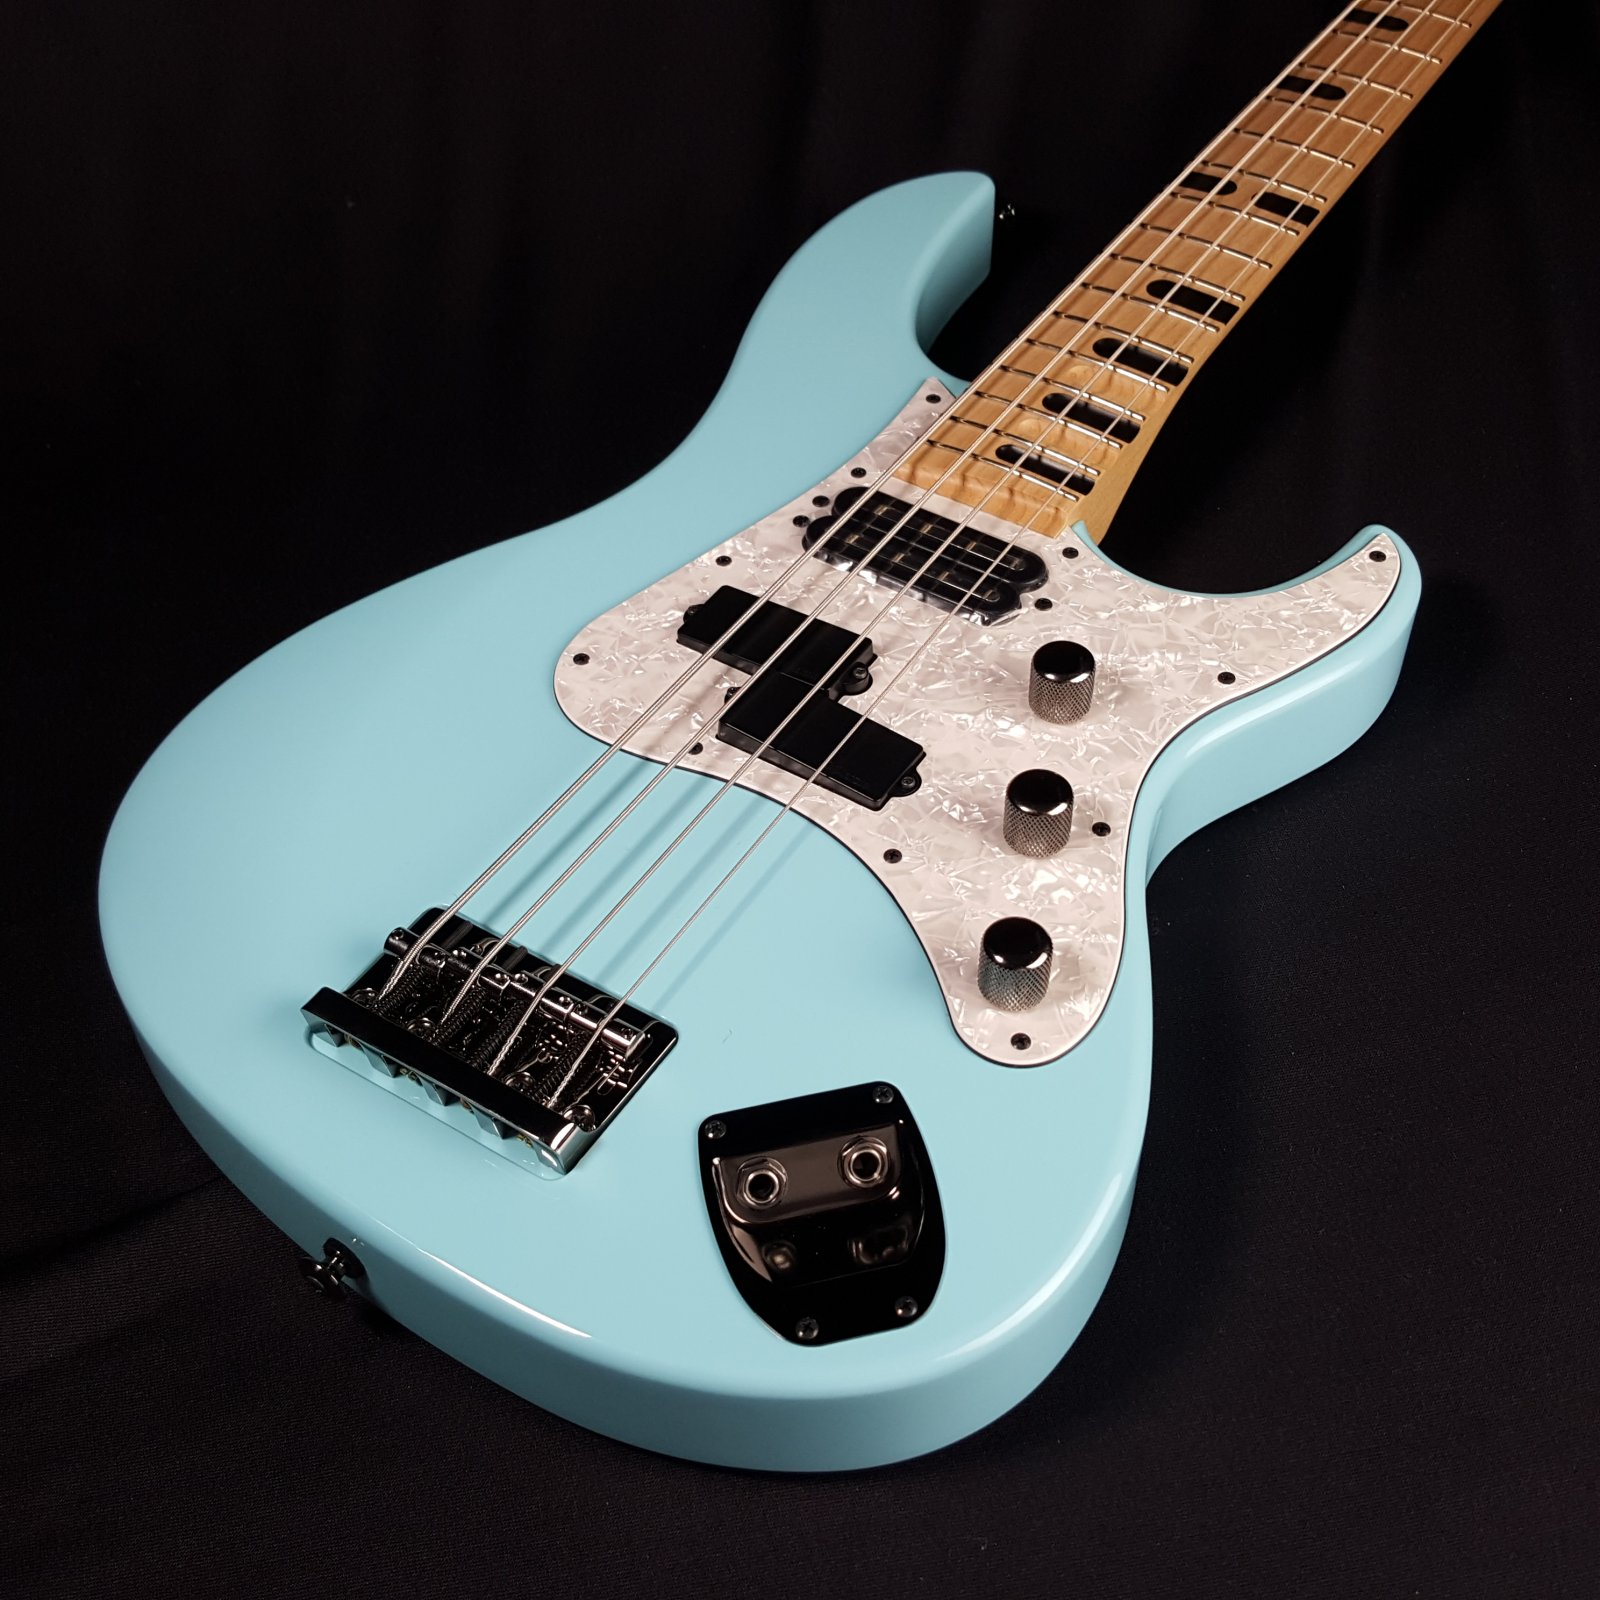 Yamaha Billy Sheehan Signature Attitude III Bass Sonic Blue with case